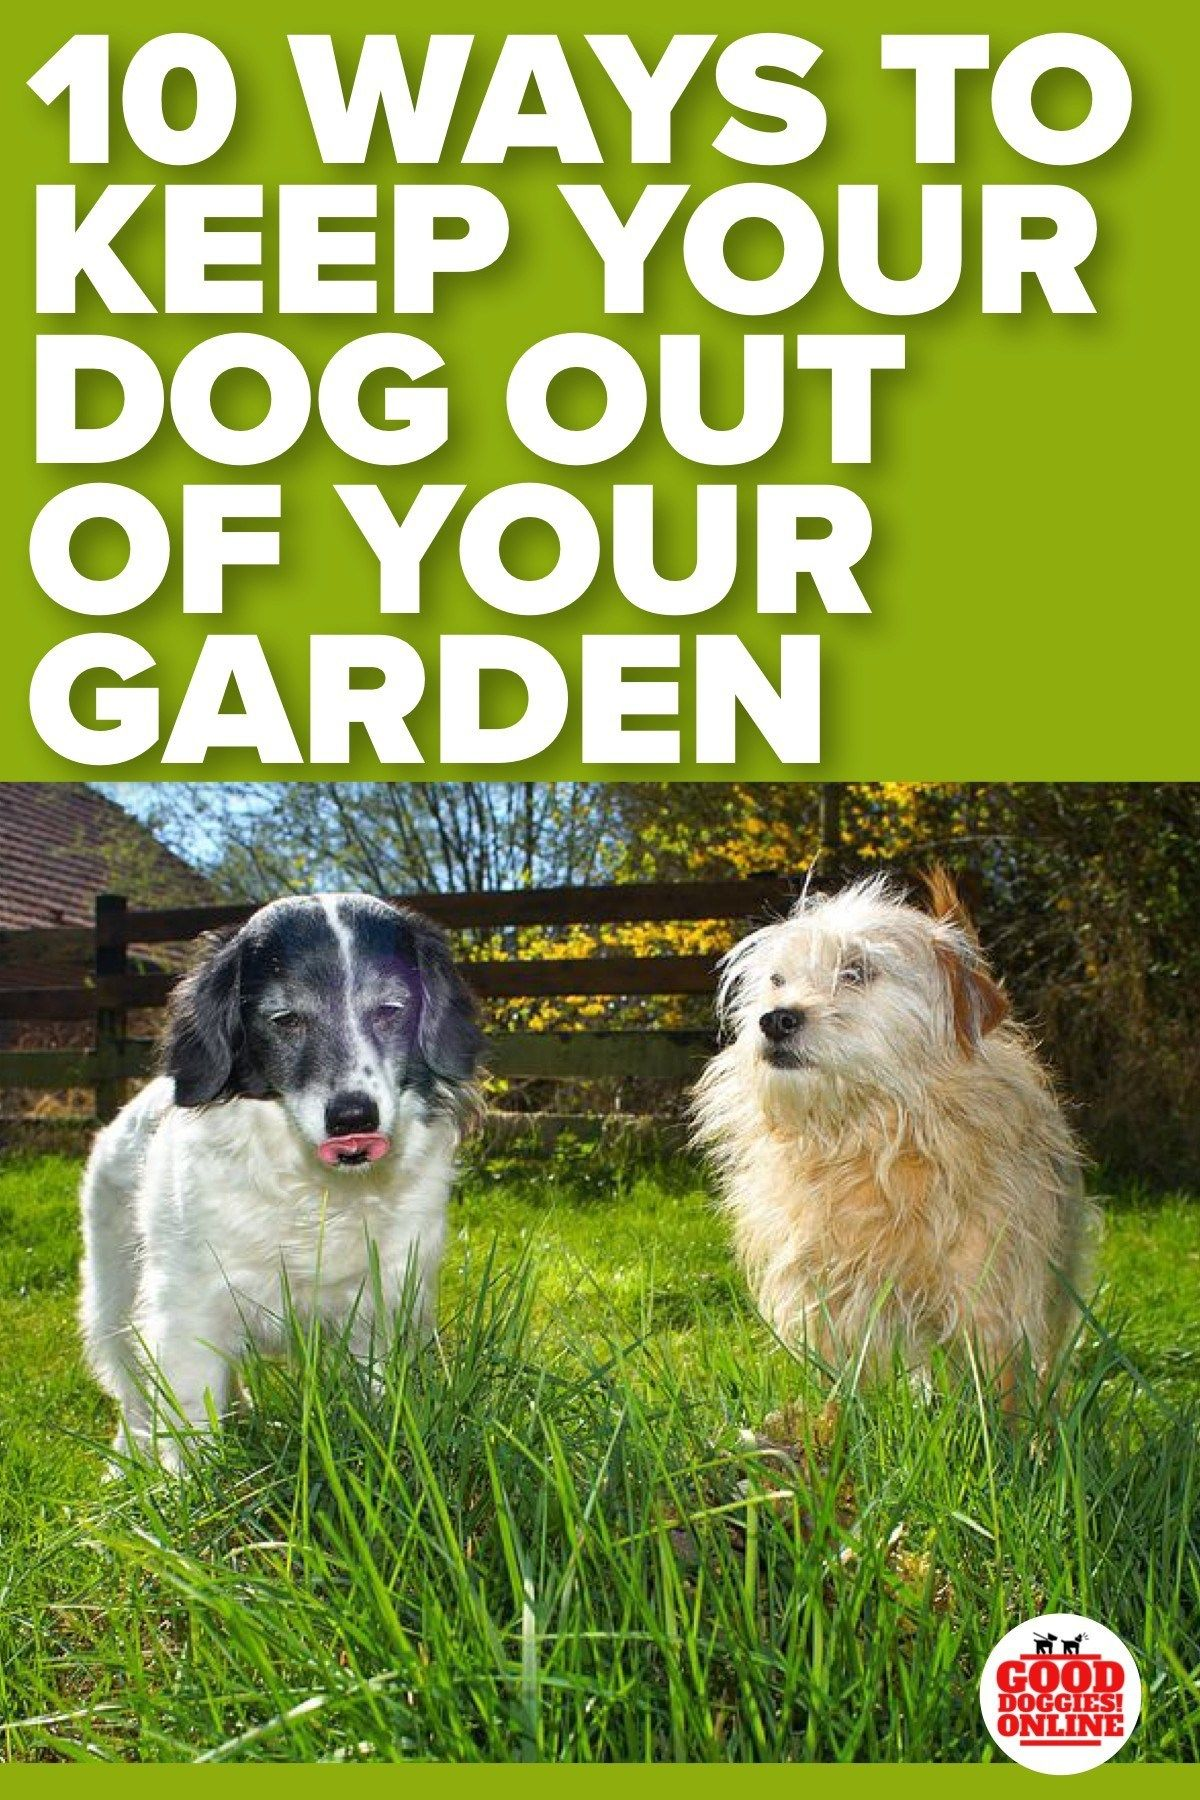 How To Keep Dogs Out Of Garden Flower Beds With Images Dog Garden Dogs Dog Flower